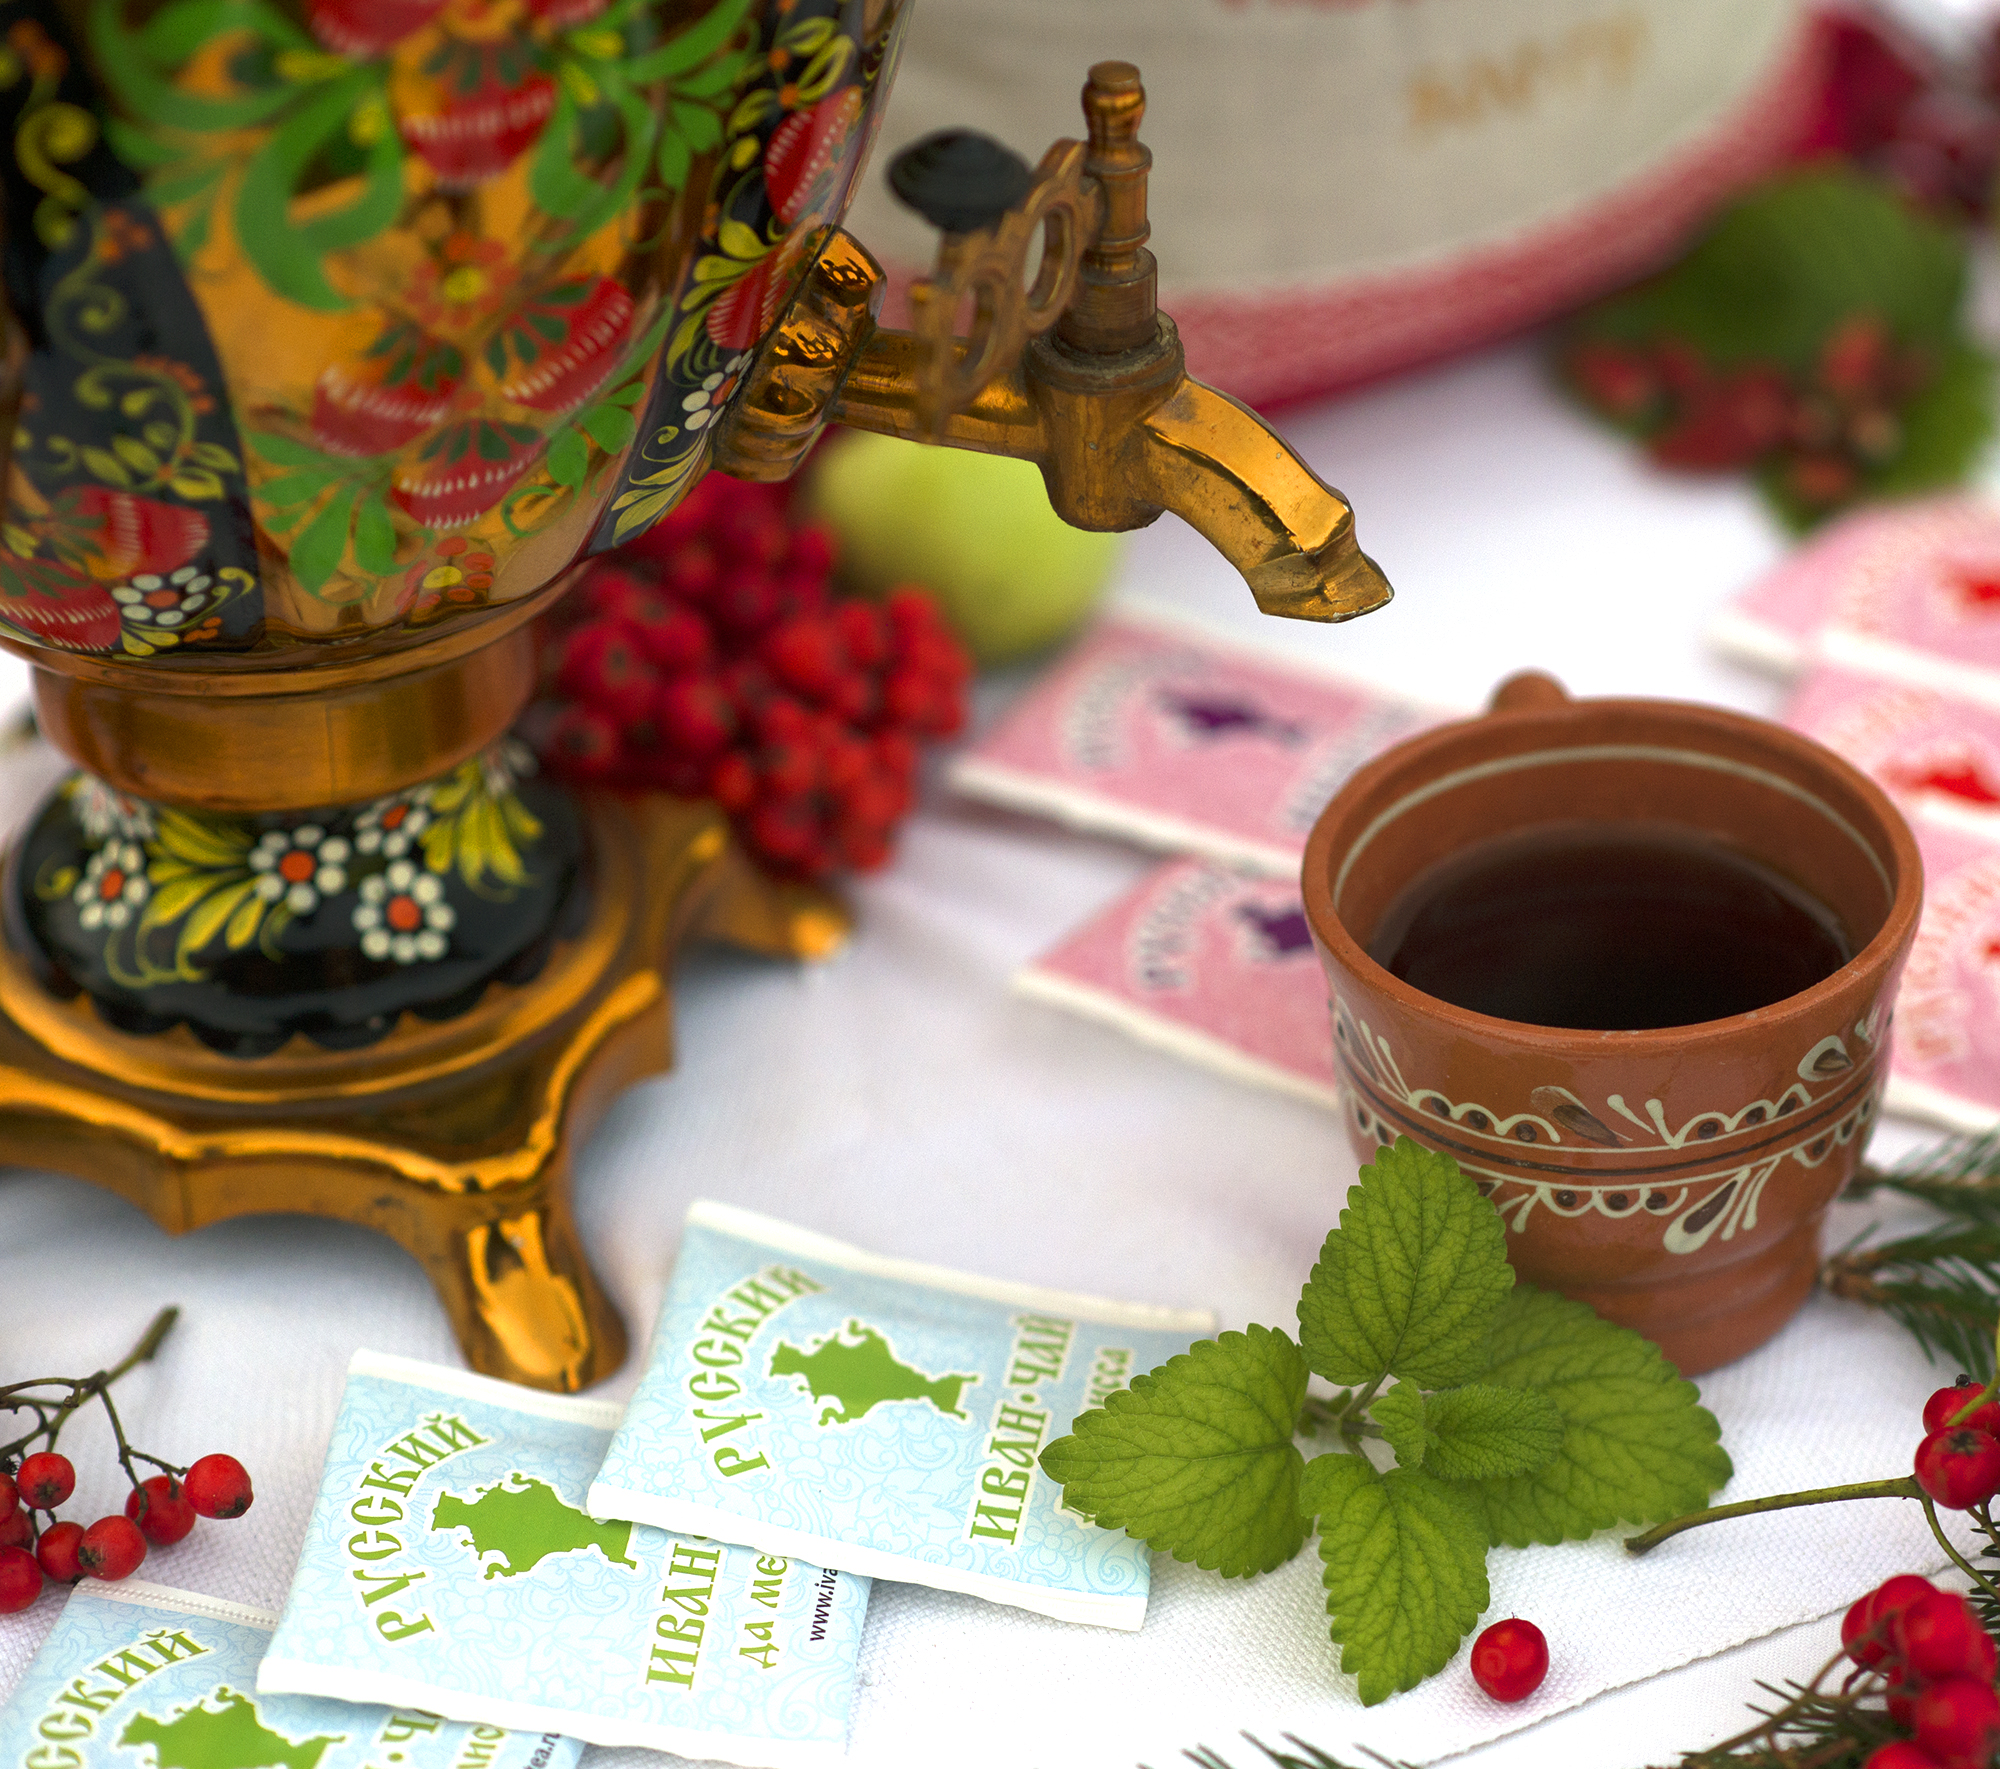 Russian Ivan-Tea & Marjoram Infusion, available in teabags